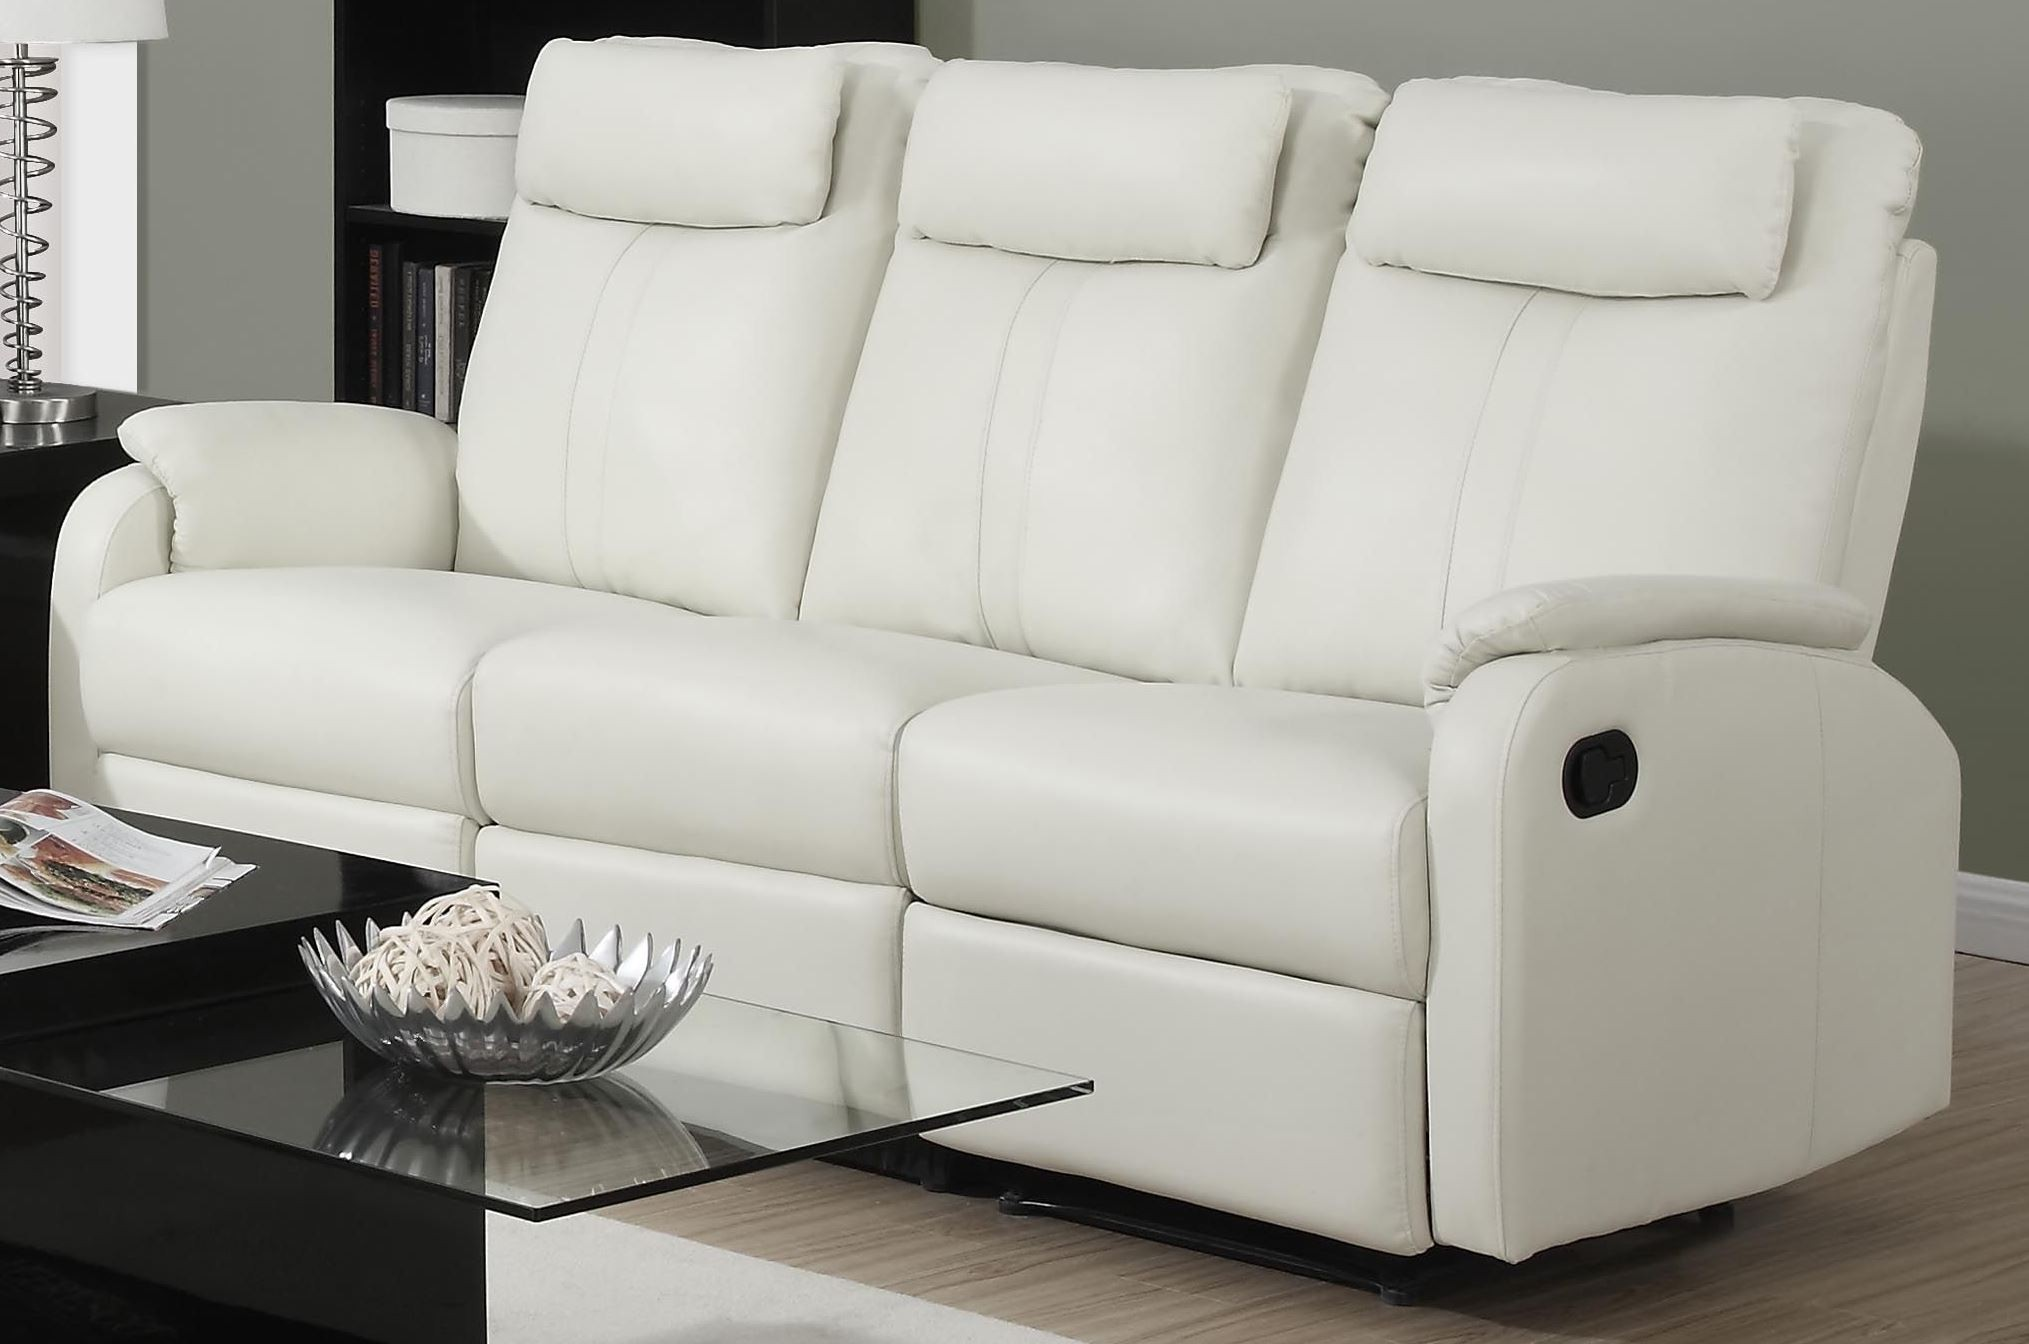 81iv 3 ivory bonded leather reclining living room set Ivory leather living room furniture